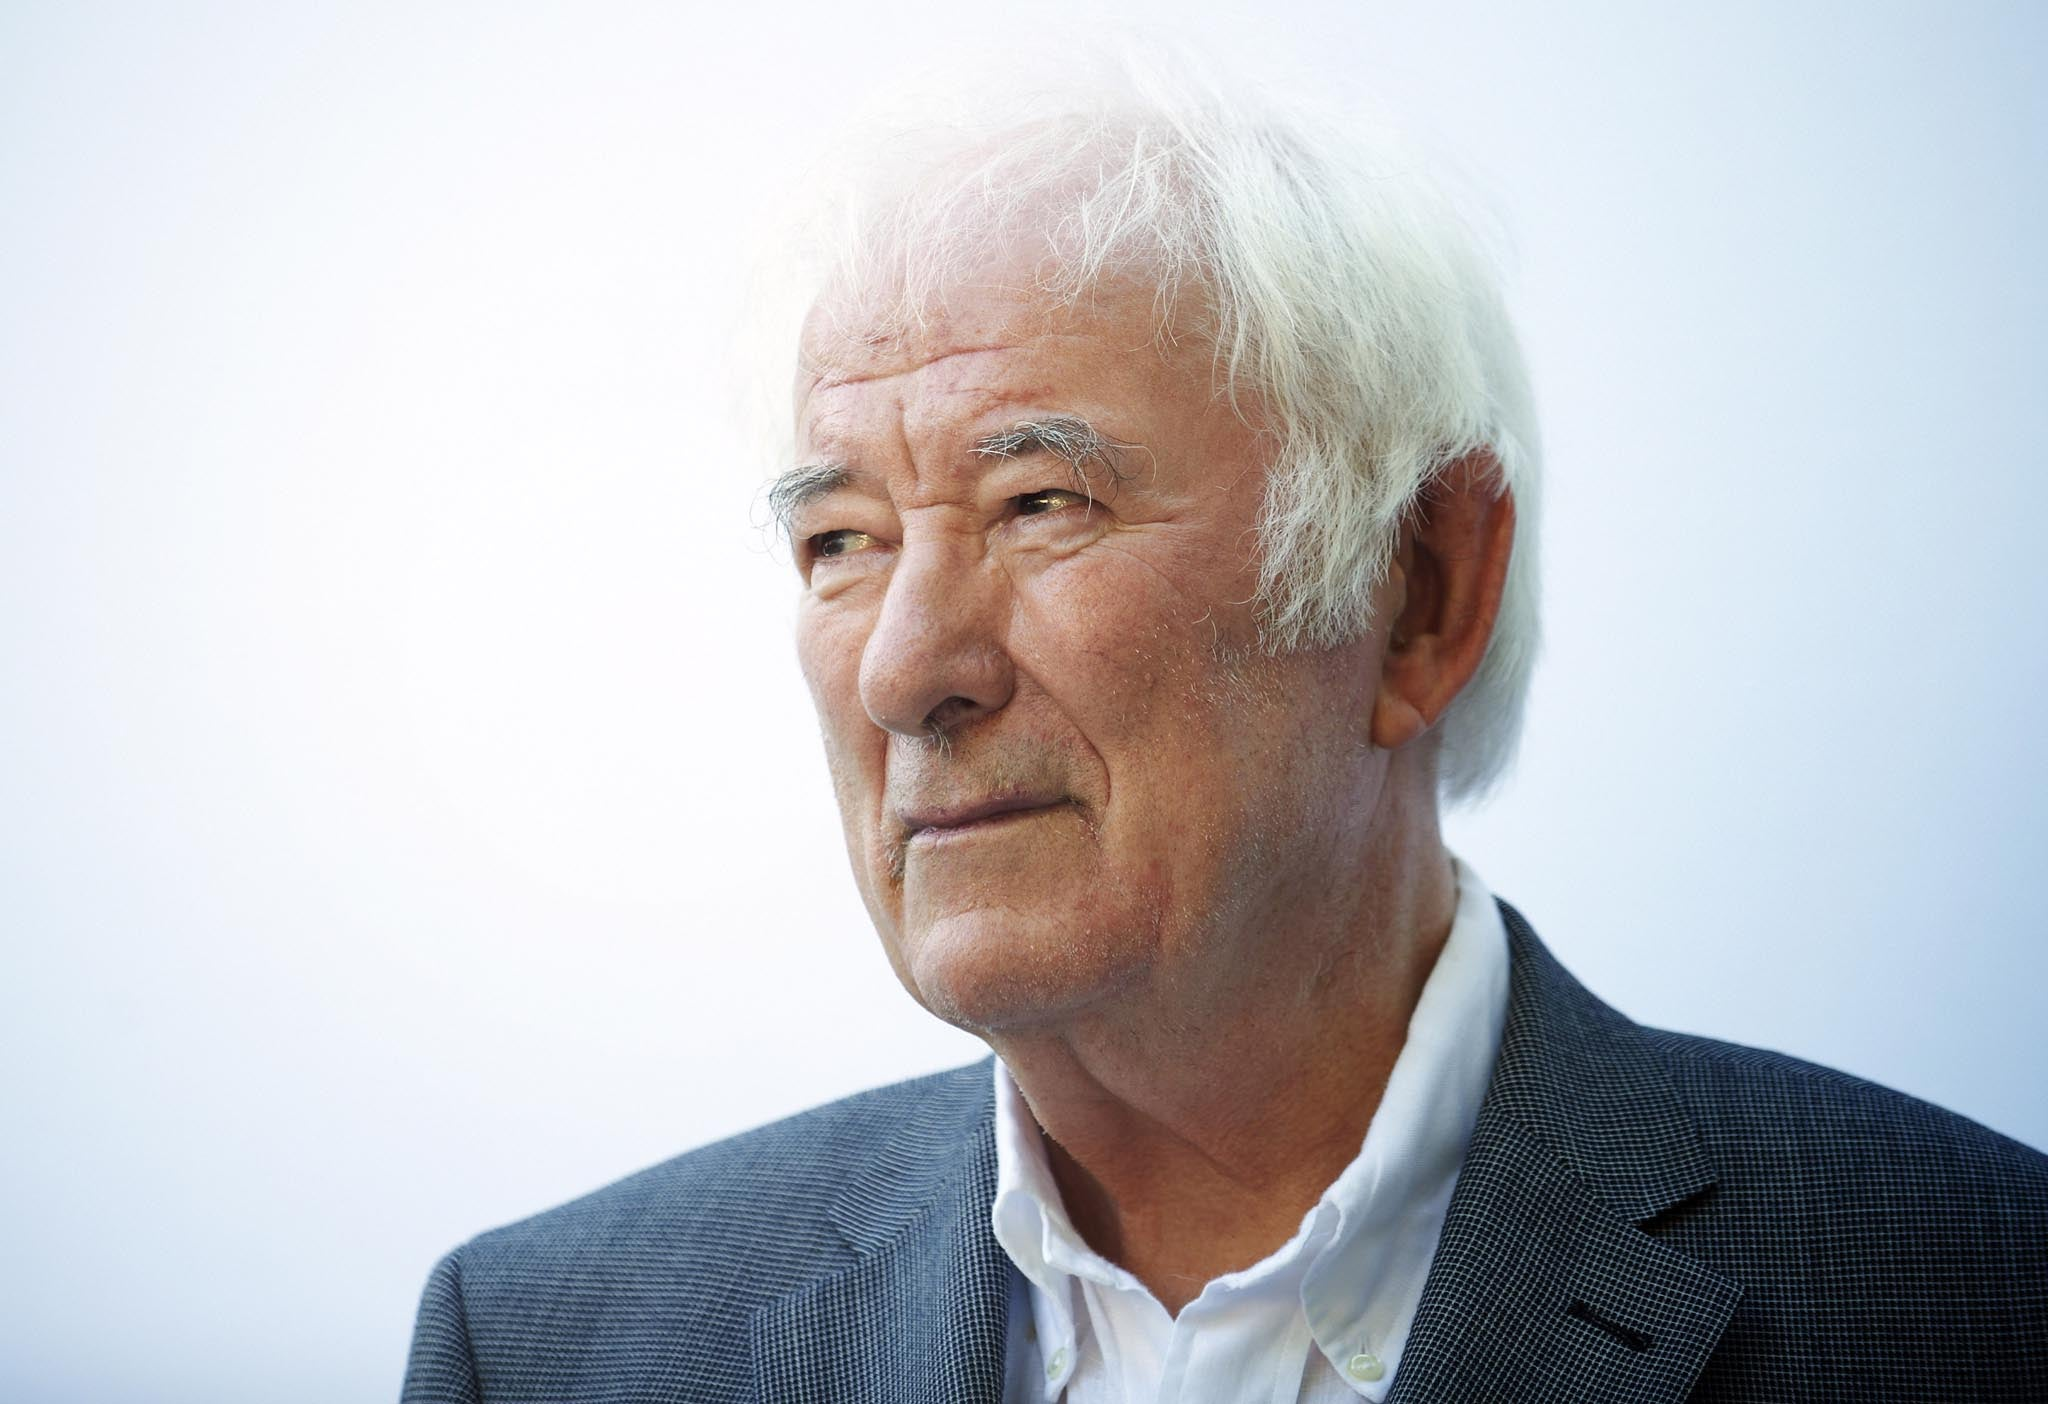 seamus heaney criticism and essays Seamus heaney's peninsula essays: death of a naturalist analysis the poem, like seamus heaney's work, is very nature minded in terms of context.